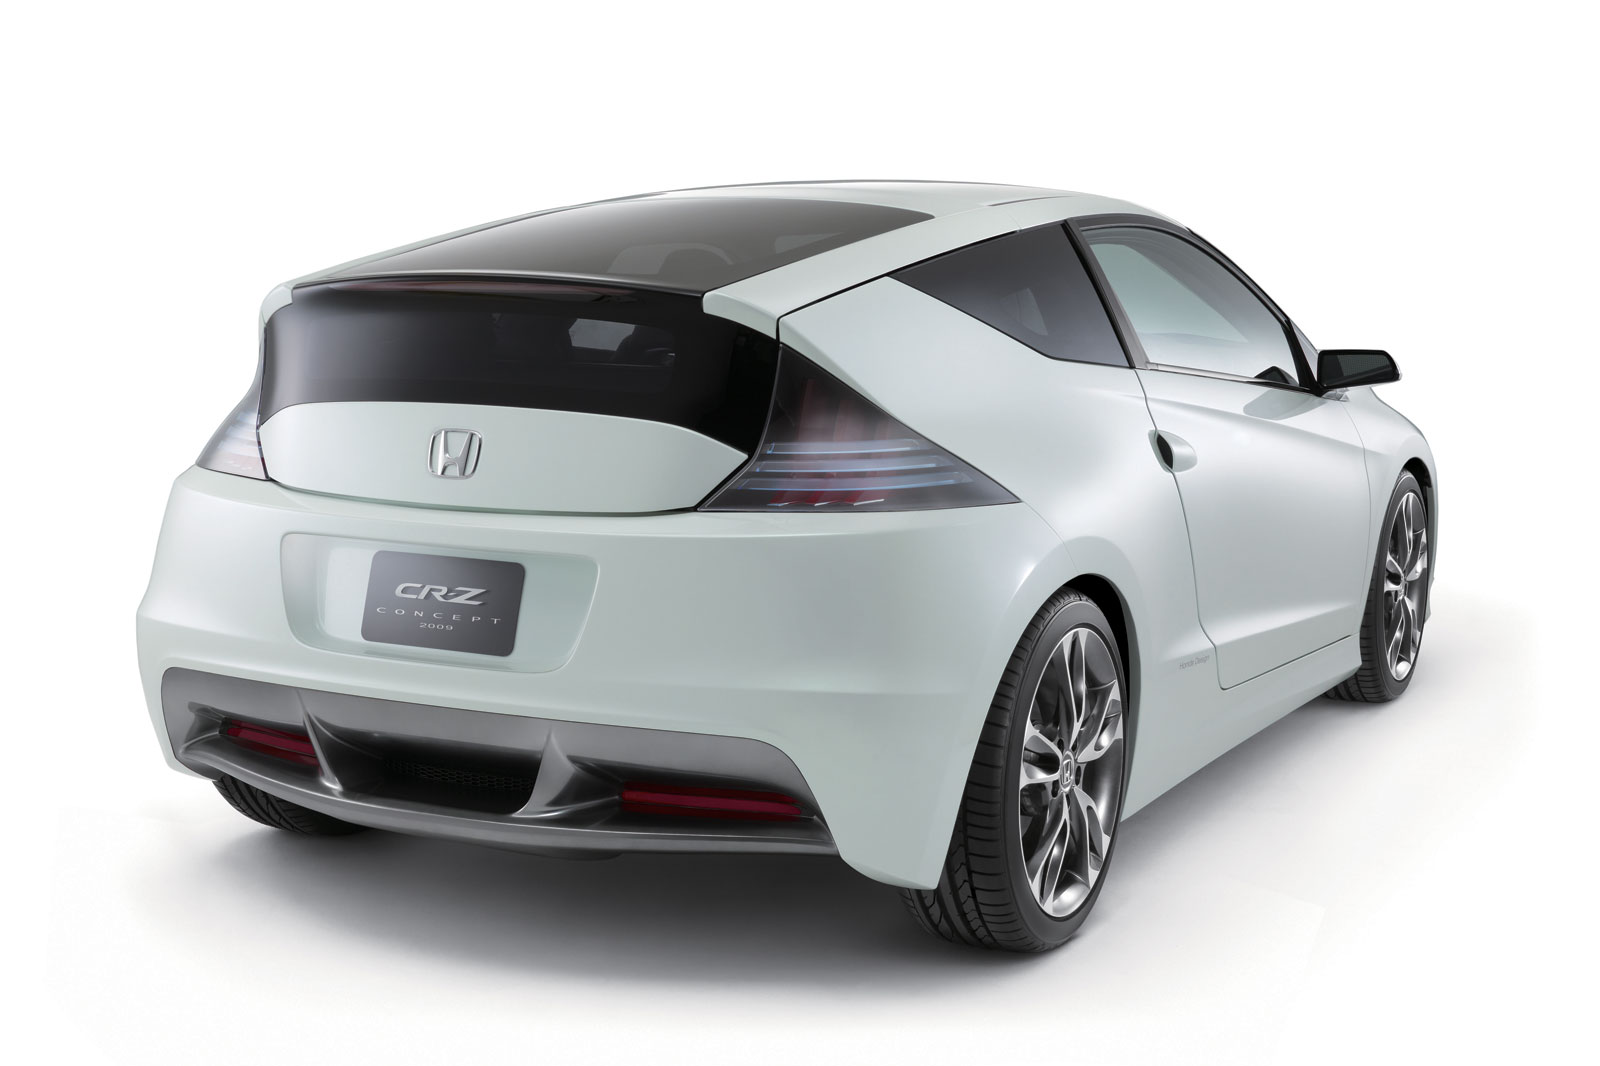 Honda cr-z photo - 1